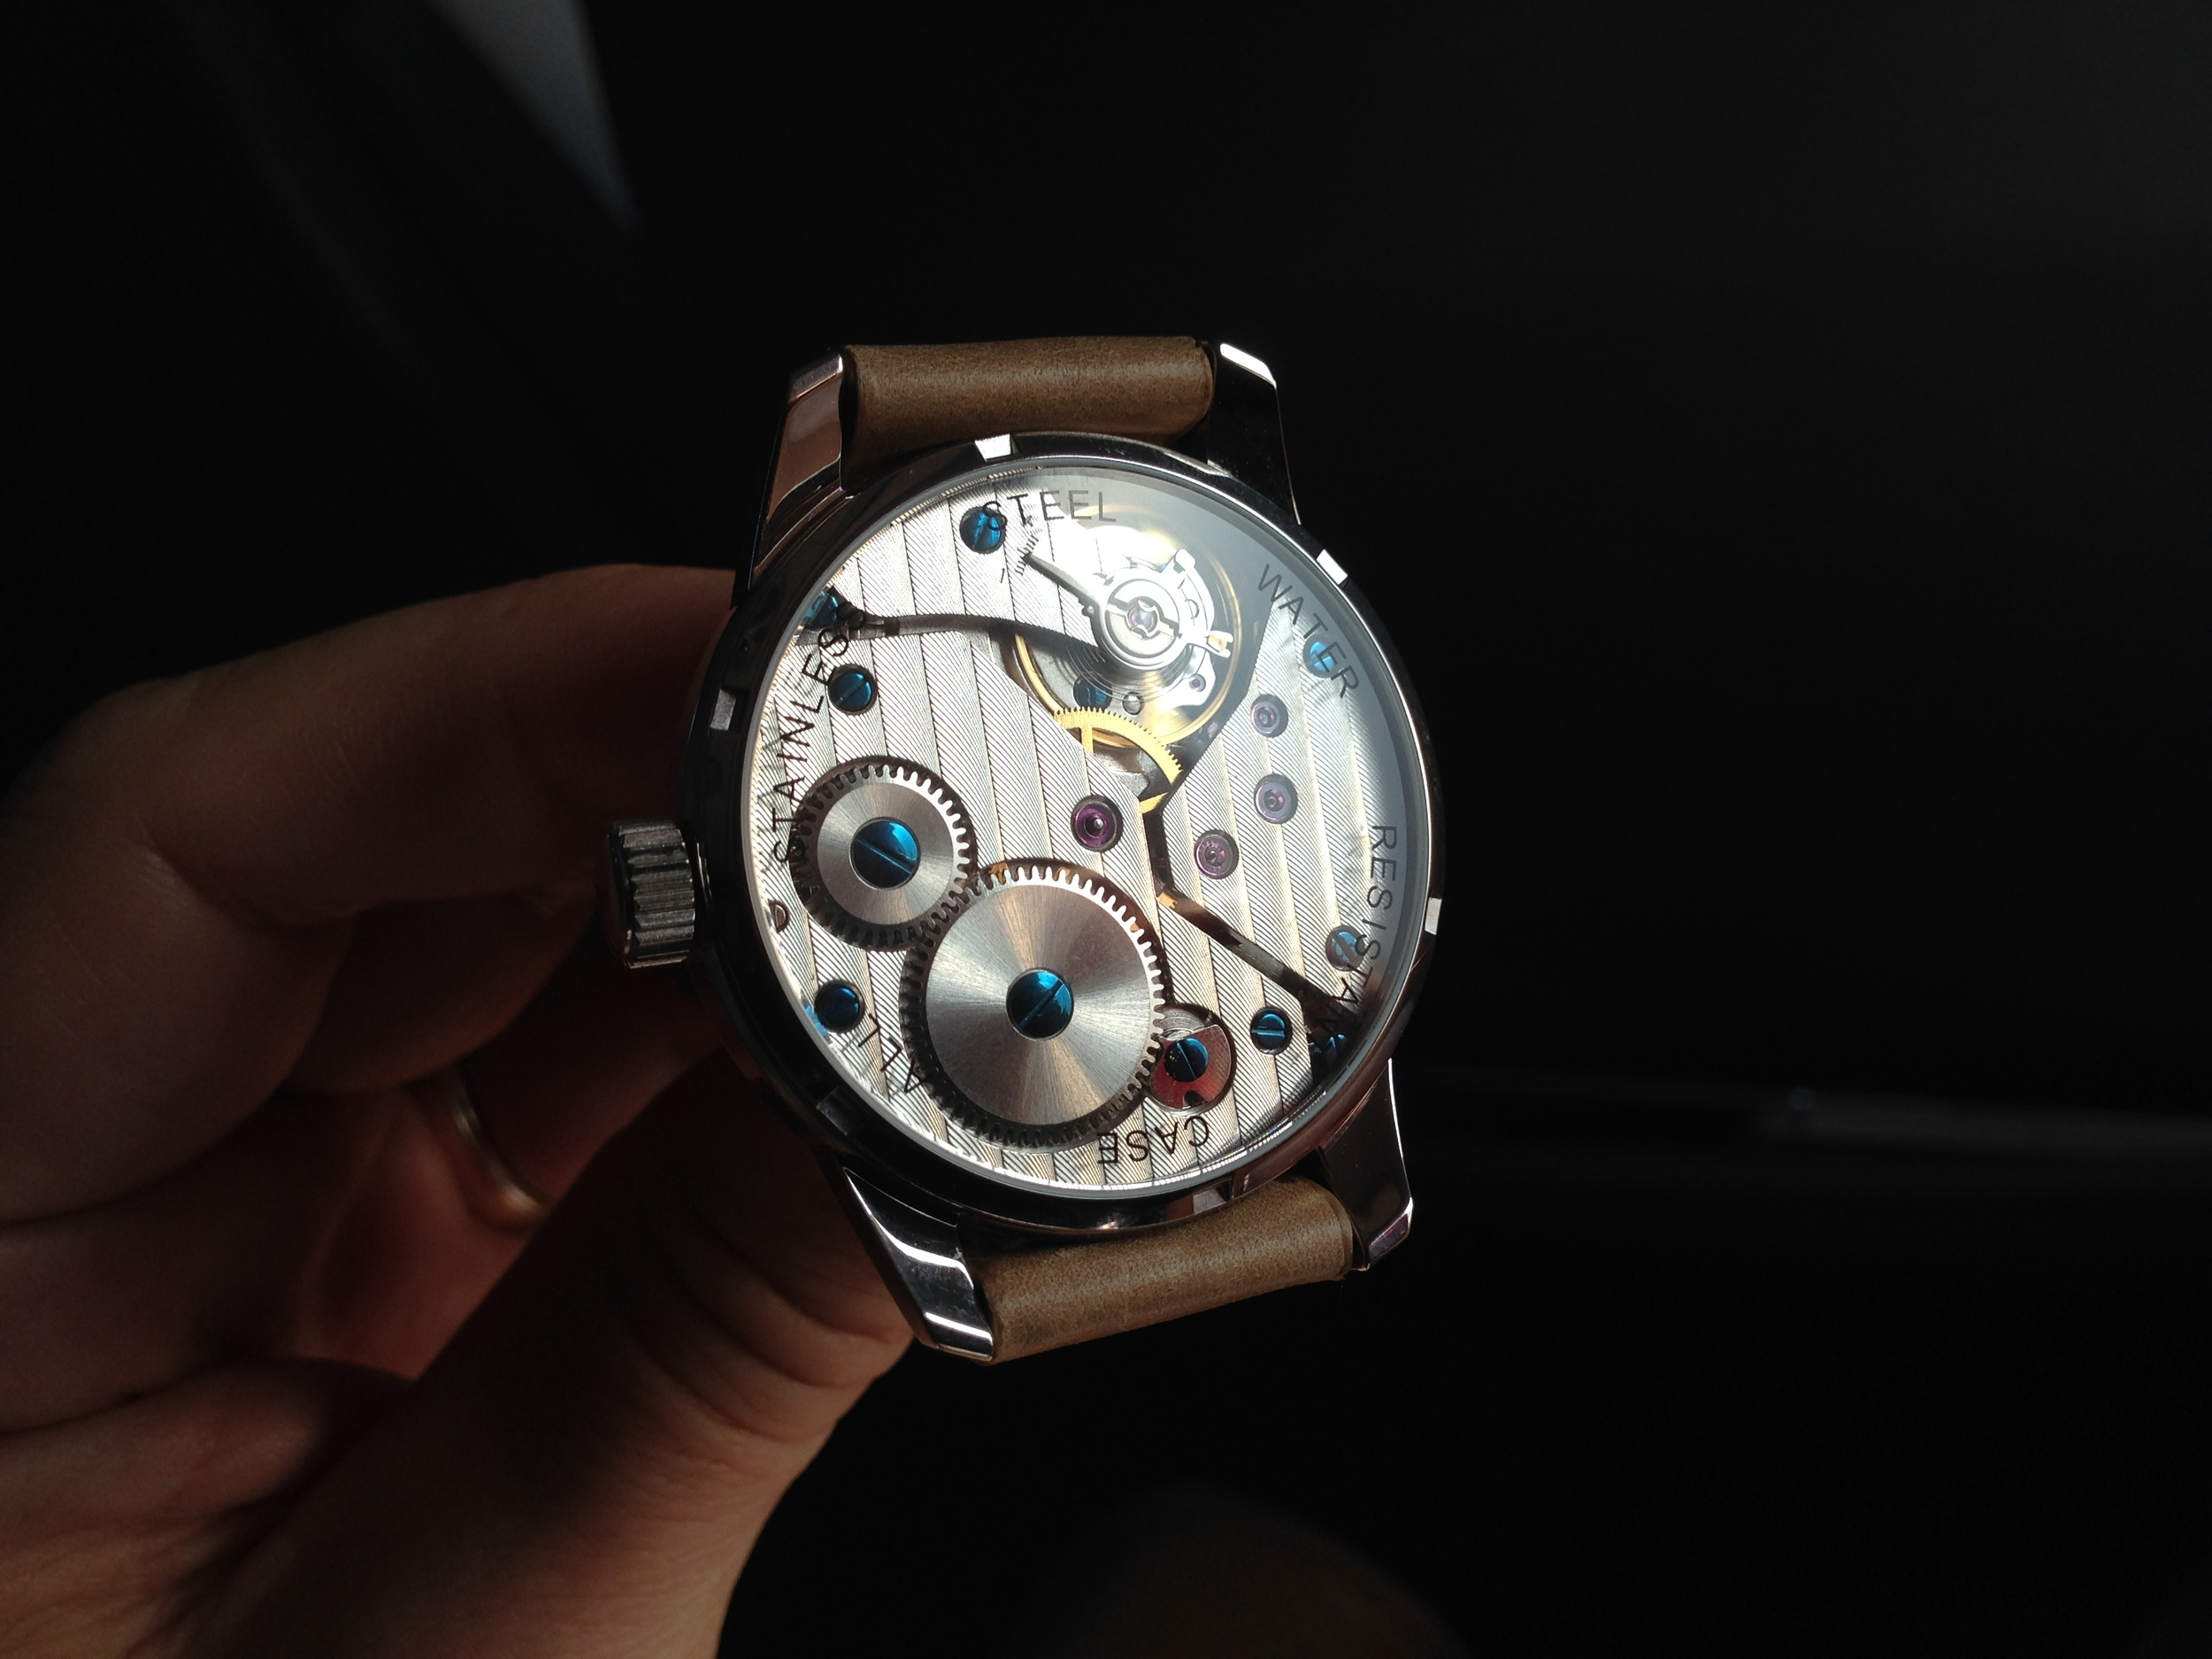 The beating heart of our watches.